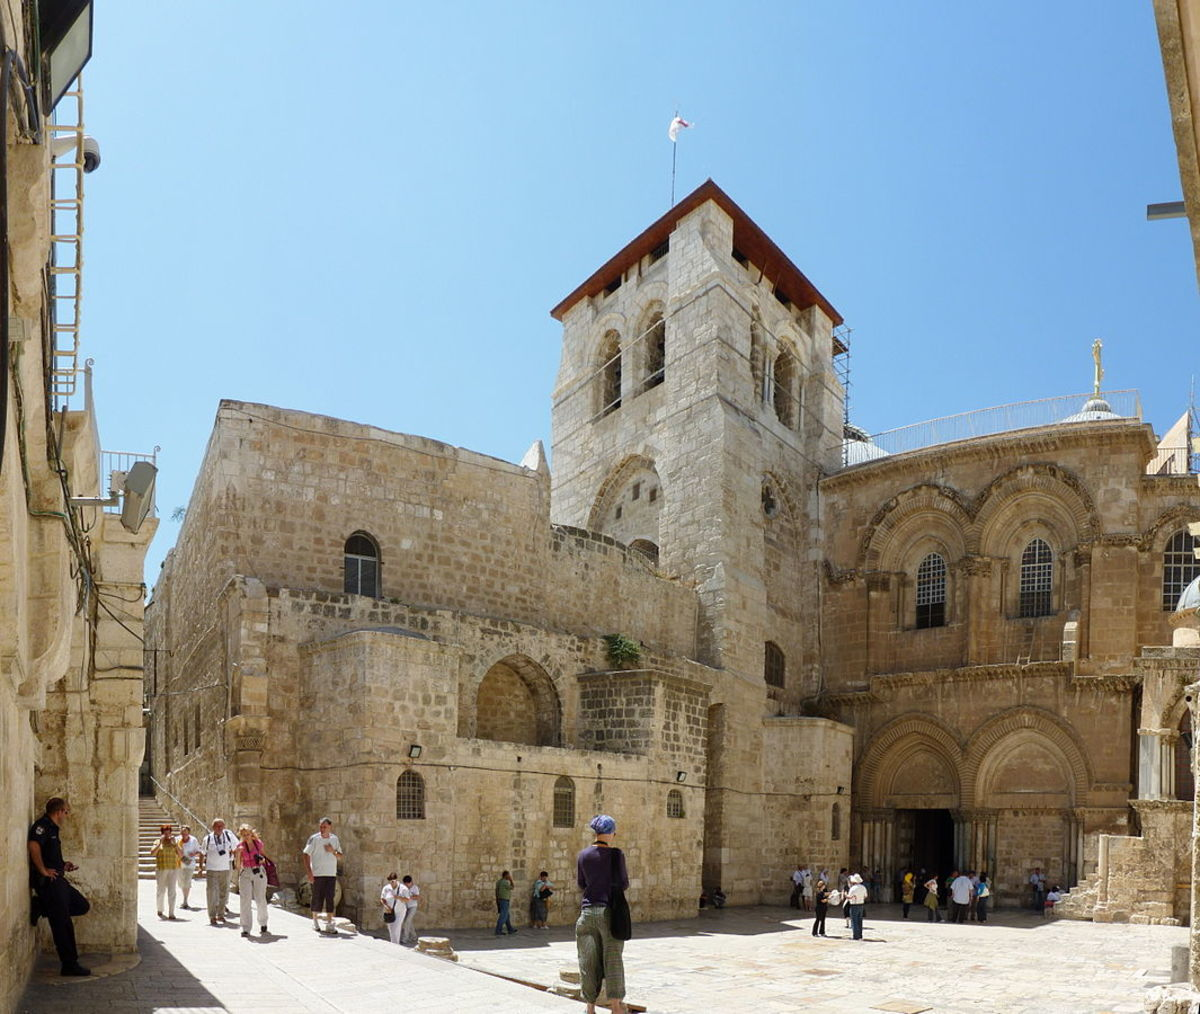 VISIT JERUSALEM: The Church of the Holy Sepulchre and the Via Dolorosa